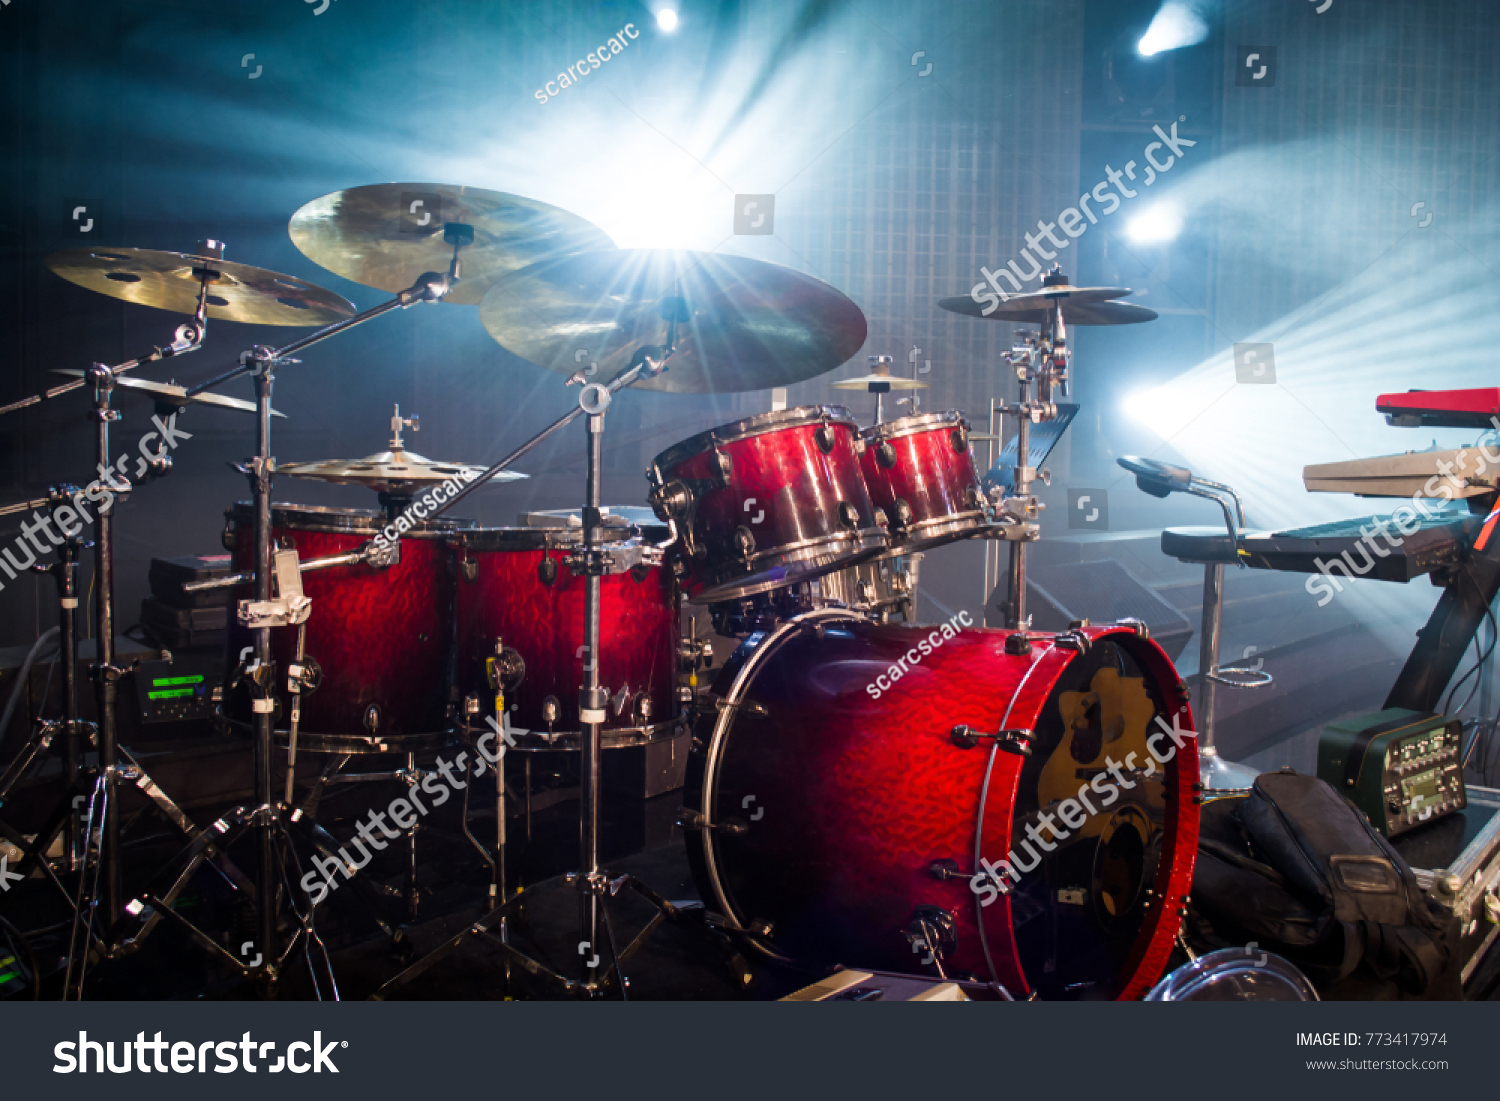 Drum Set On Stage Light Background Stock Photo Edit Now 773417974